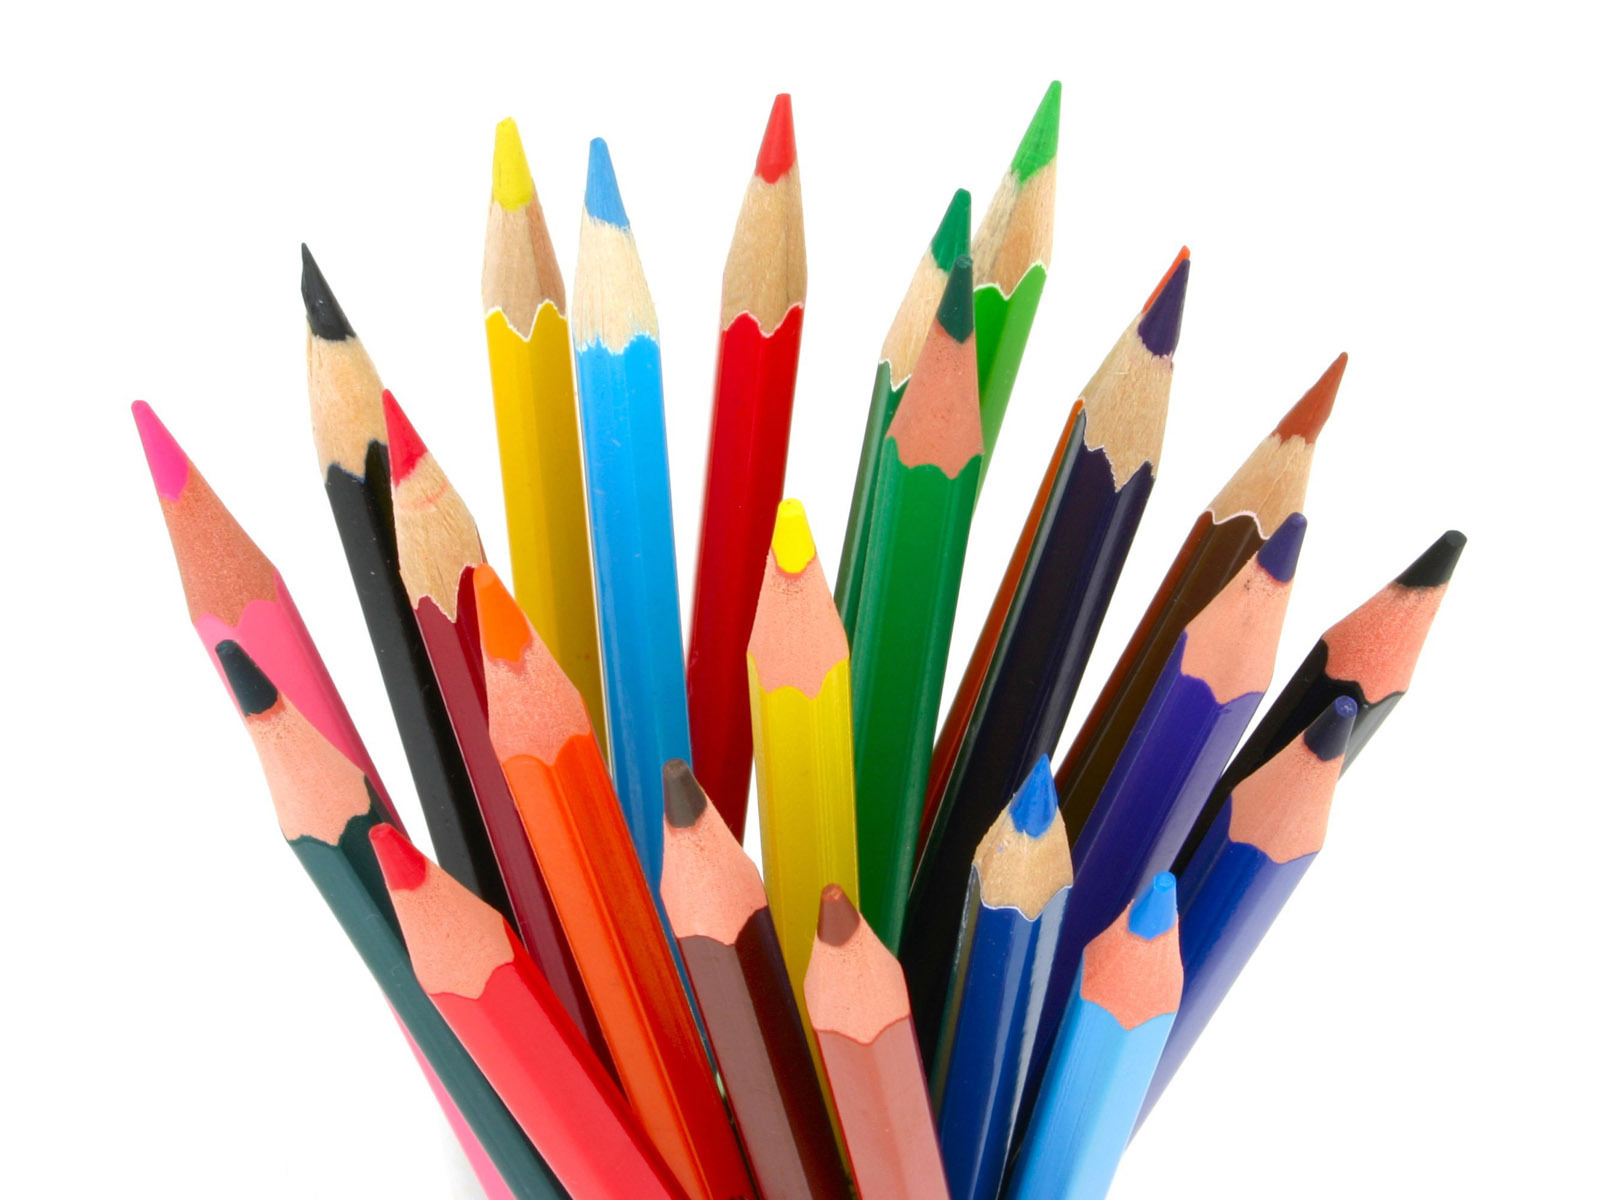 1600x1200 Pencils Images Colored Pencils Hd Wallpaper And Background Photos